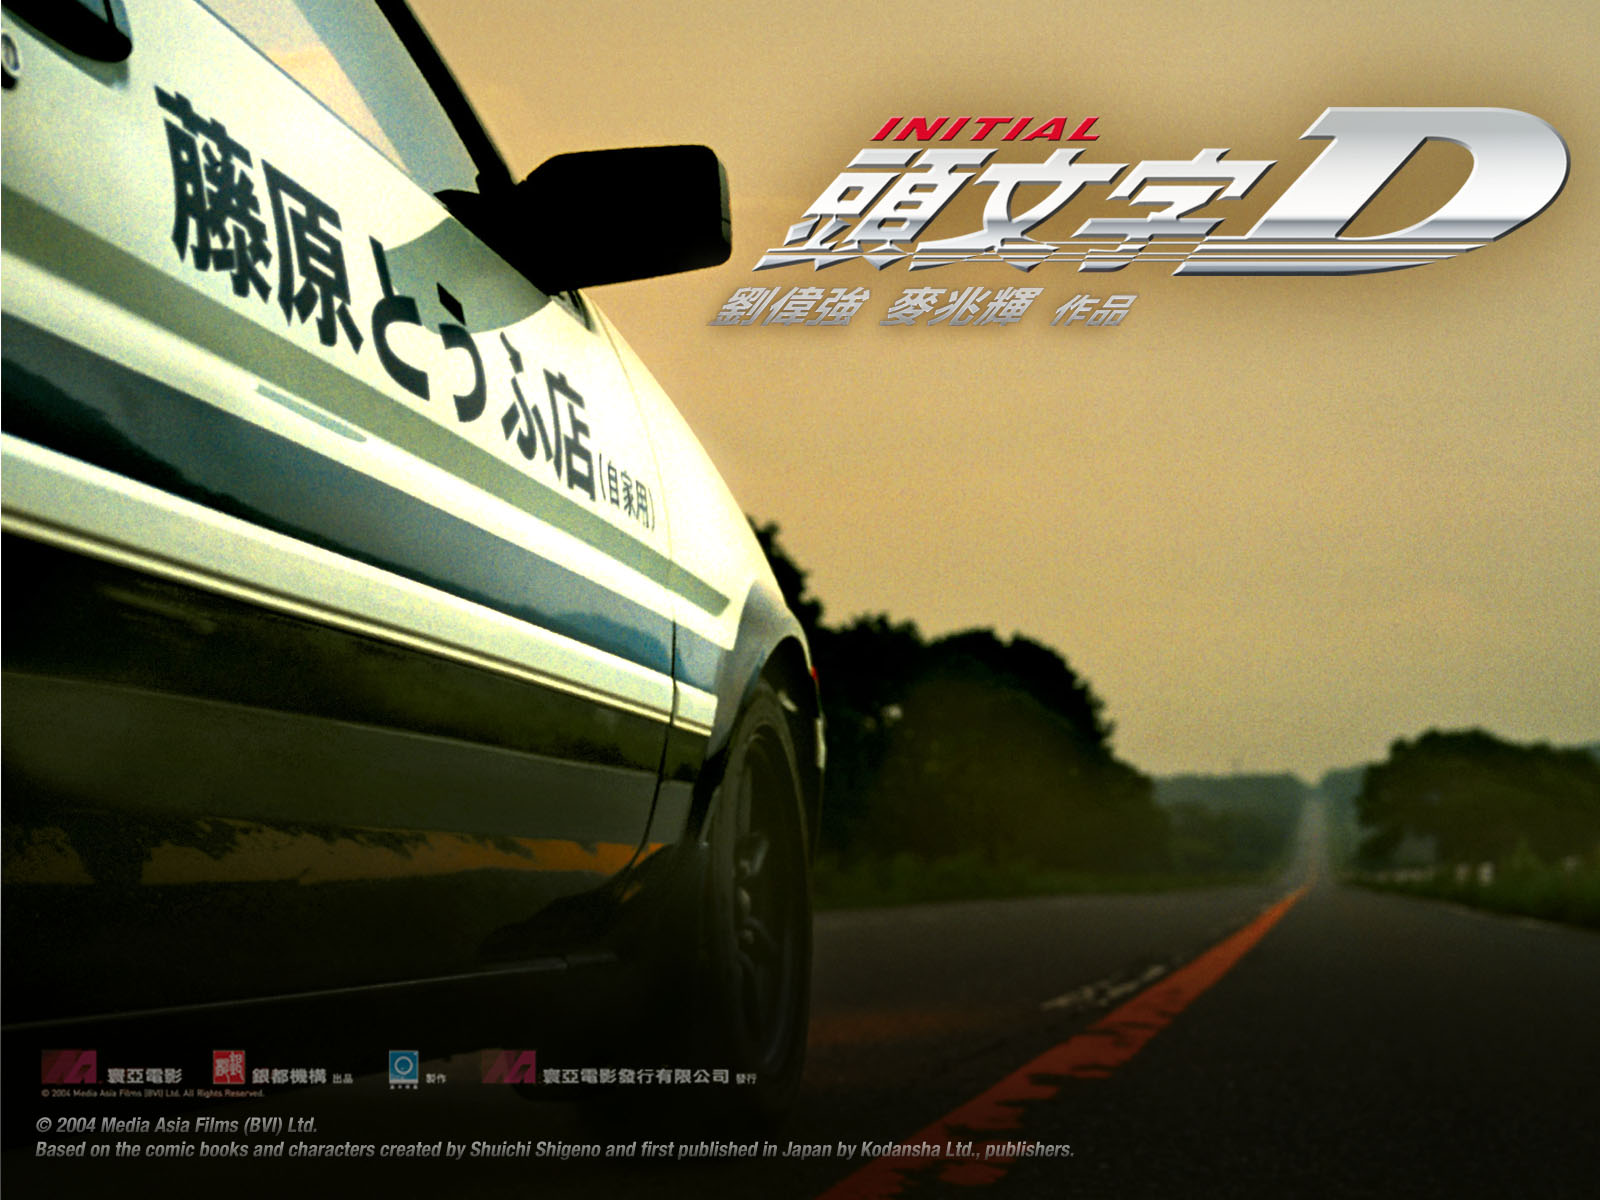 Initial D wallpaper 1200 01 in Initial D album photos and posters 1600x1200